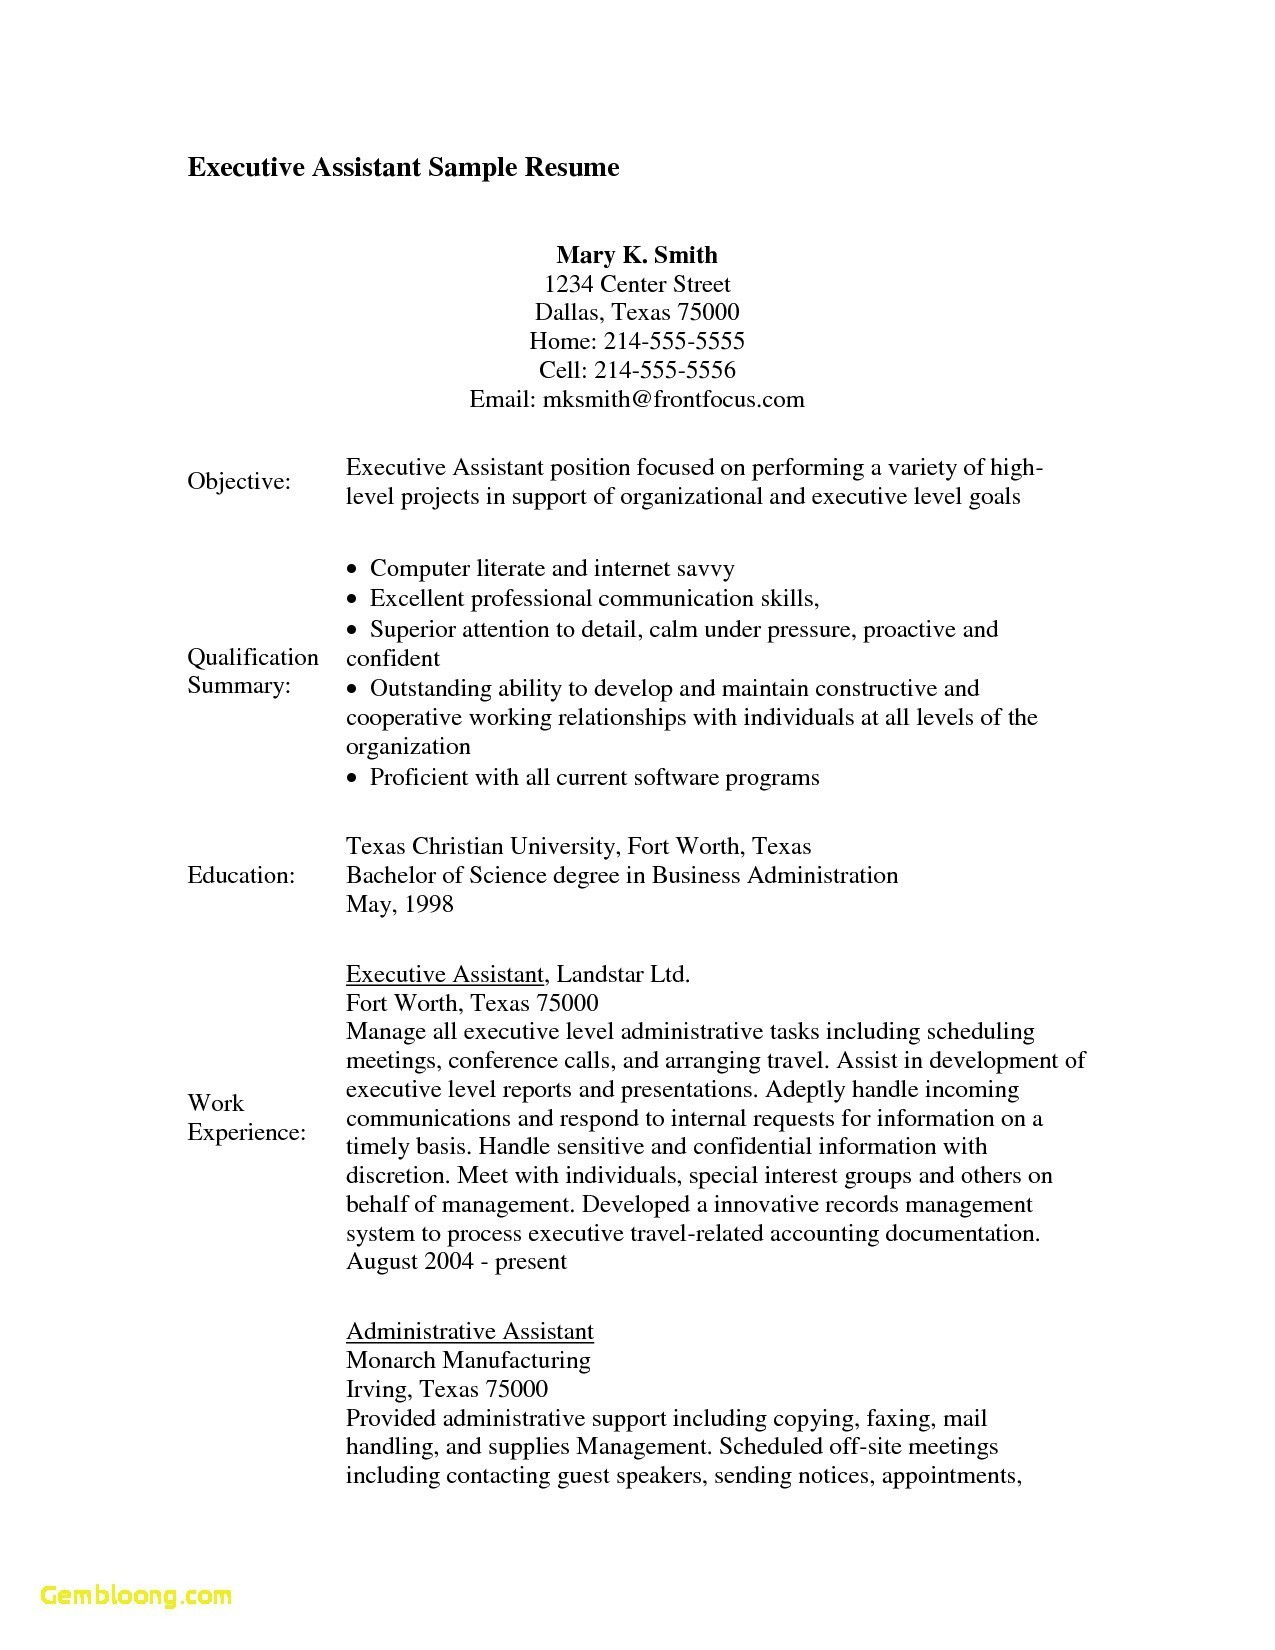 Medical Administrative assistant Resume - Medical assistant Resume New Inspirational Medical assistant Resumes